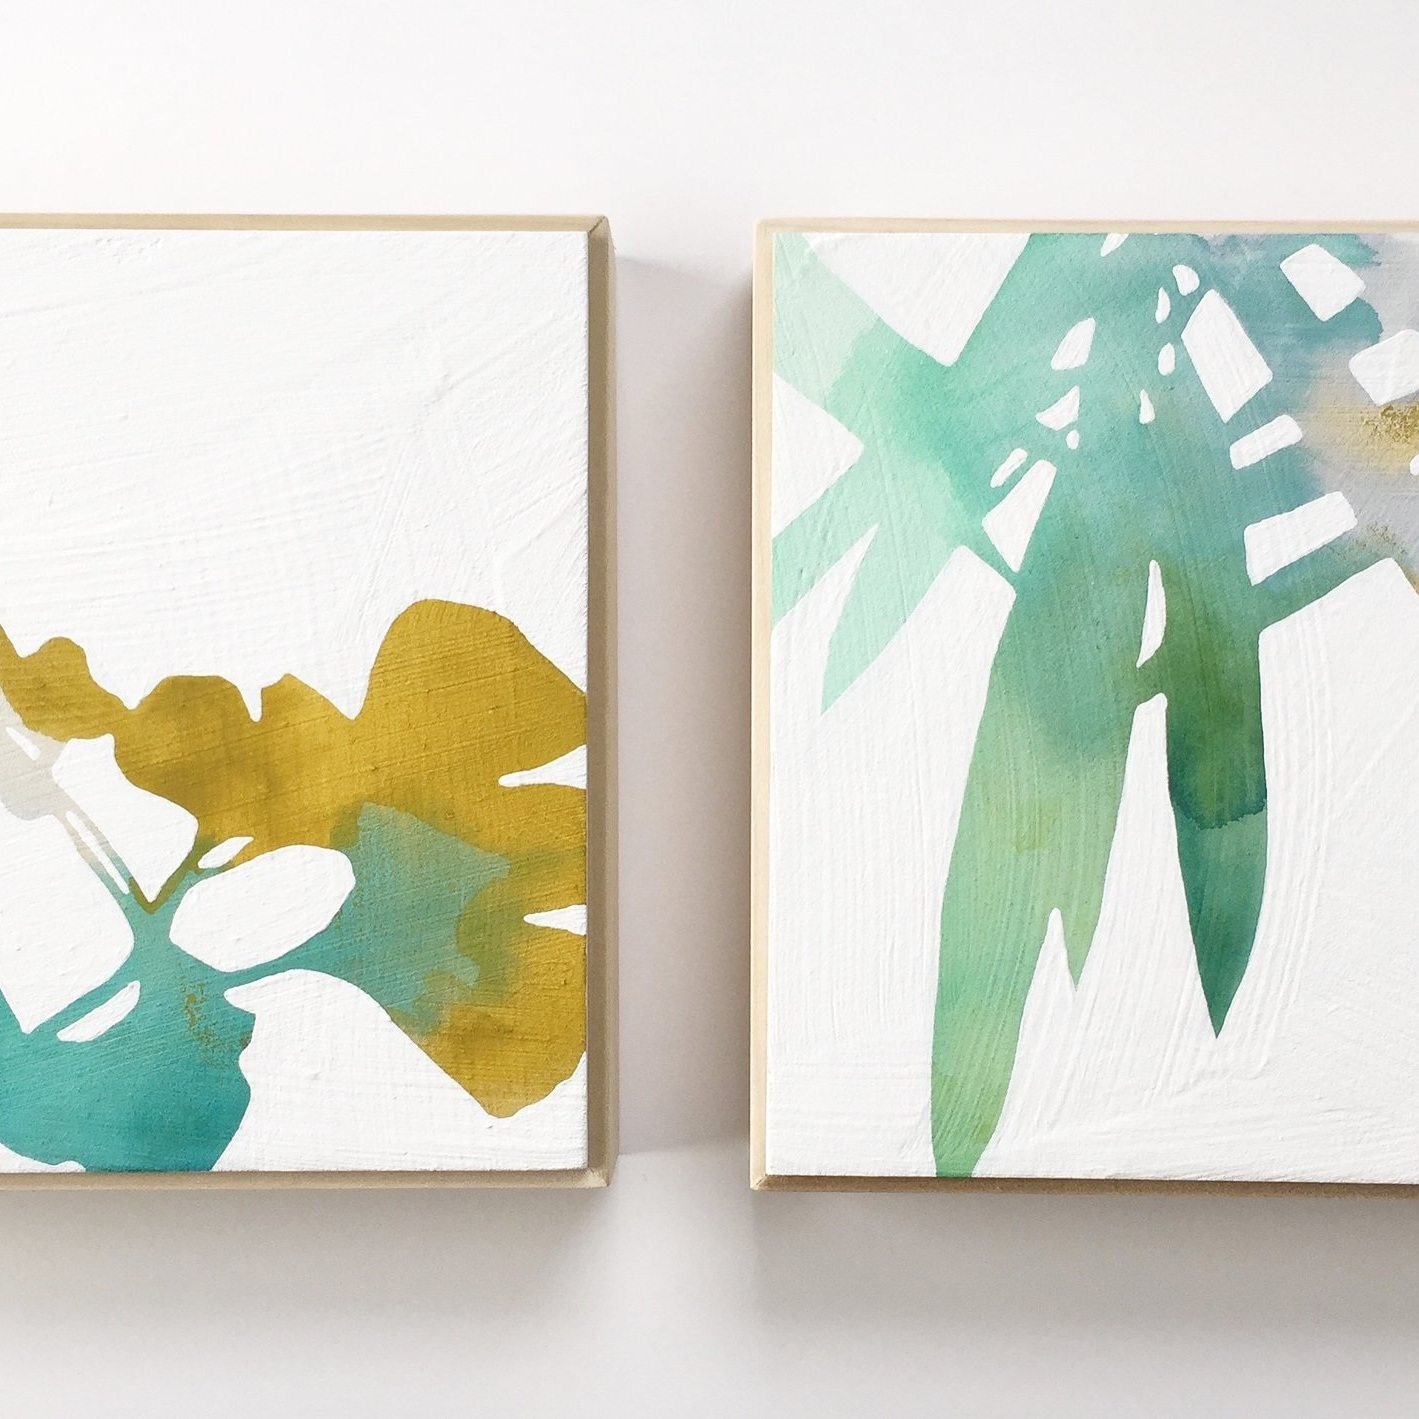 Ginkgo & Bamboo // Botanical Watercolors on Wood   NEW! Rachel Austin Art showroom within    Urbanite    now open! Stop by for cards, prints, paintings and more!    1005 SE Grand Ave, Portland. Open daily from 9-6     Upcoming Happenings   Portland Open Studios Tour  October 12 & 13th, 19 & 20th 10-5pm  Rachel Austin Art at the  Urbanite  Holiday Open House  December 7th  I'll be there from 4 to at least 7pm. Come by for some holiday fun and check out my new space at Urbanite!    Crafty Wonderland Holiday Sale  December 14th & 15th